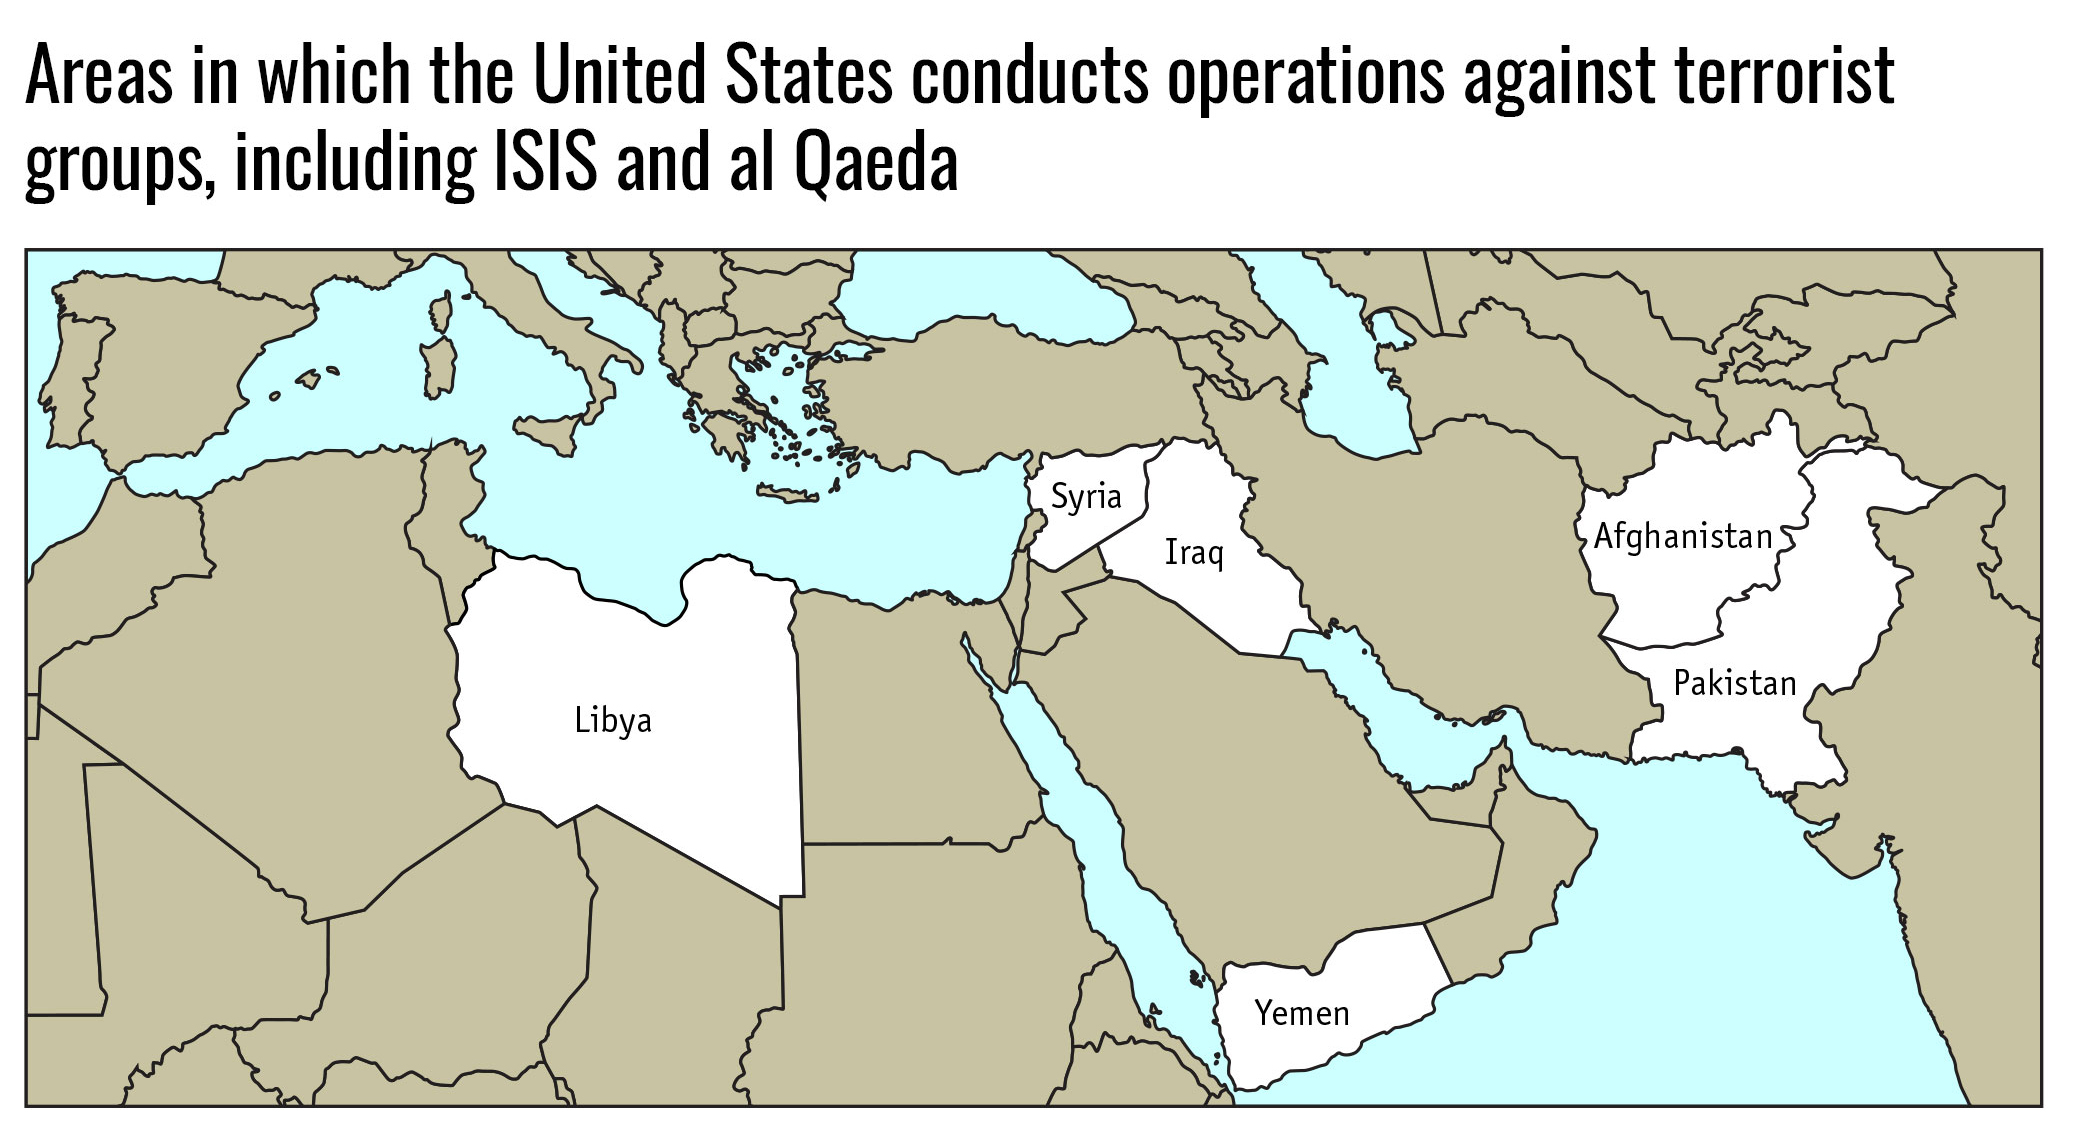 Areas in which the United States conducts operations